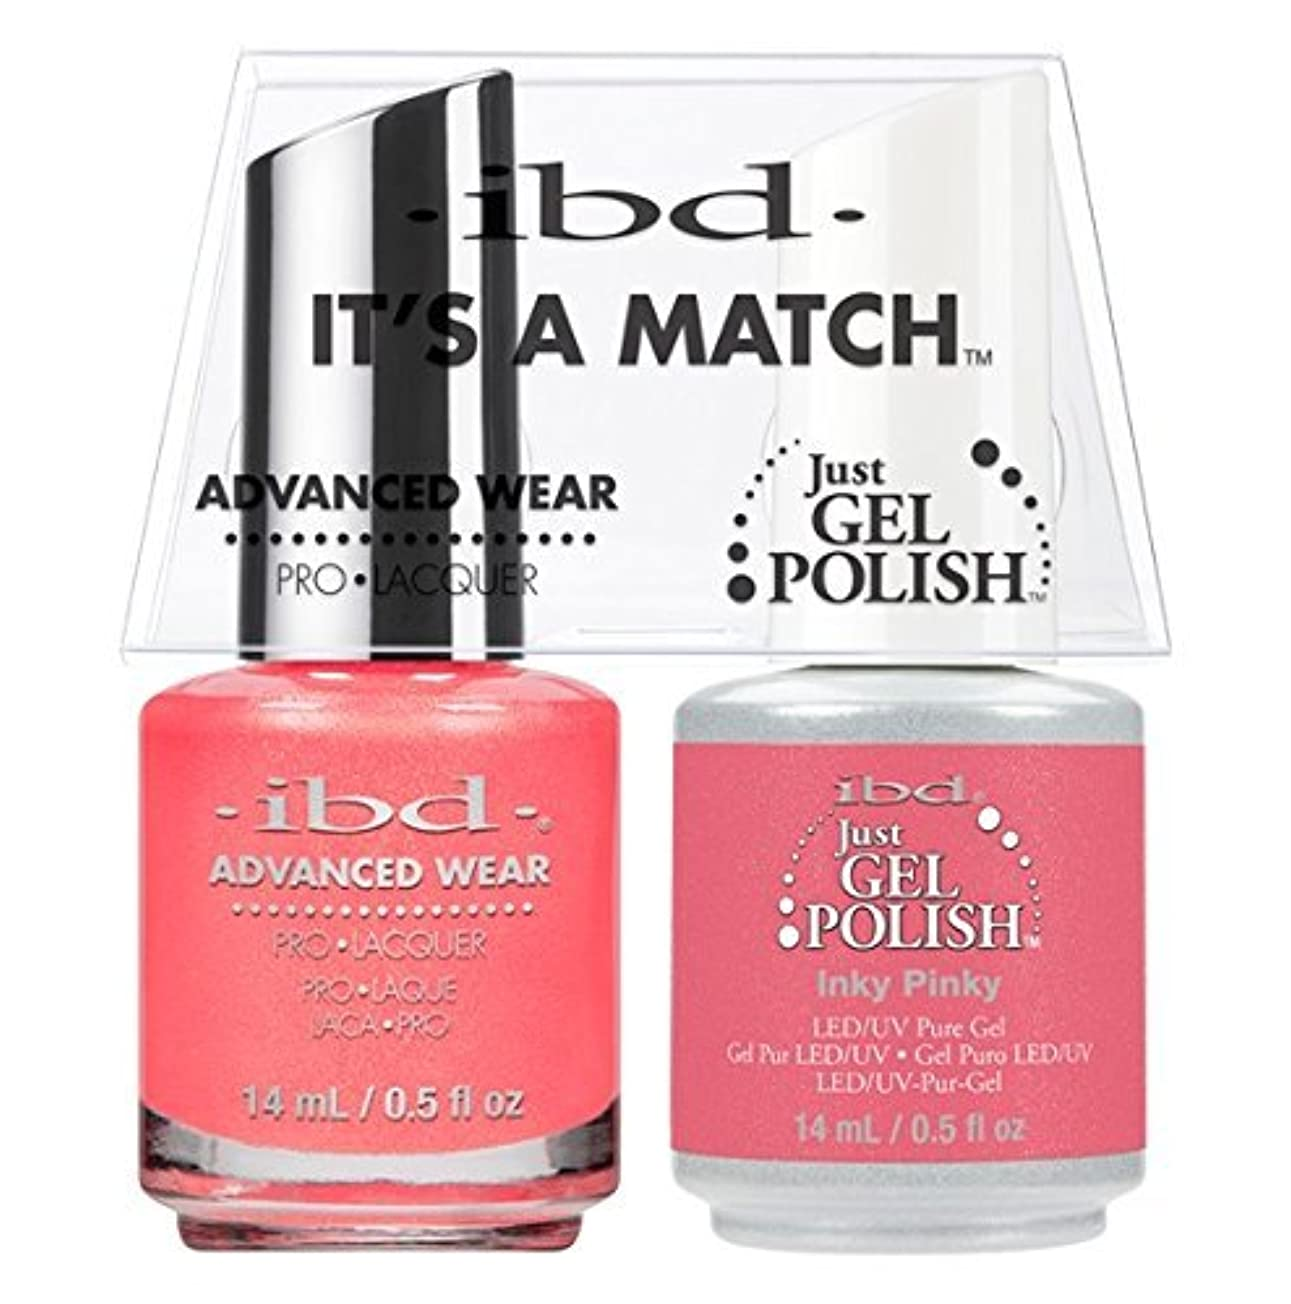 旅メイエラ柔らかいibd - It's A Match -Duo Pack- Inky Pinky - 14 mL / 0.5 oz Each